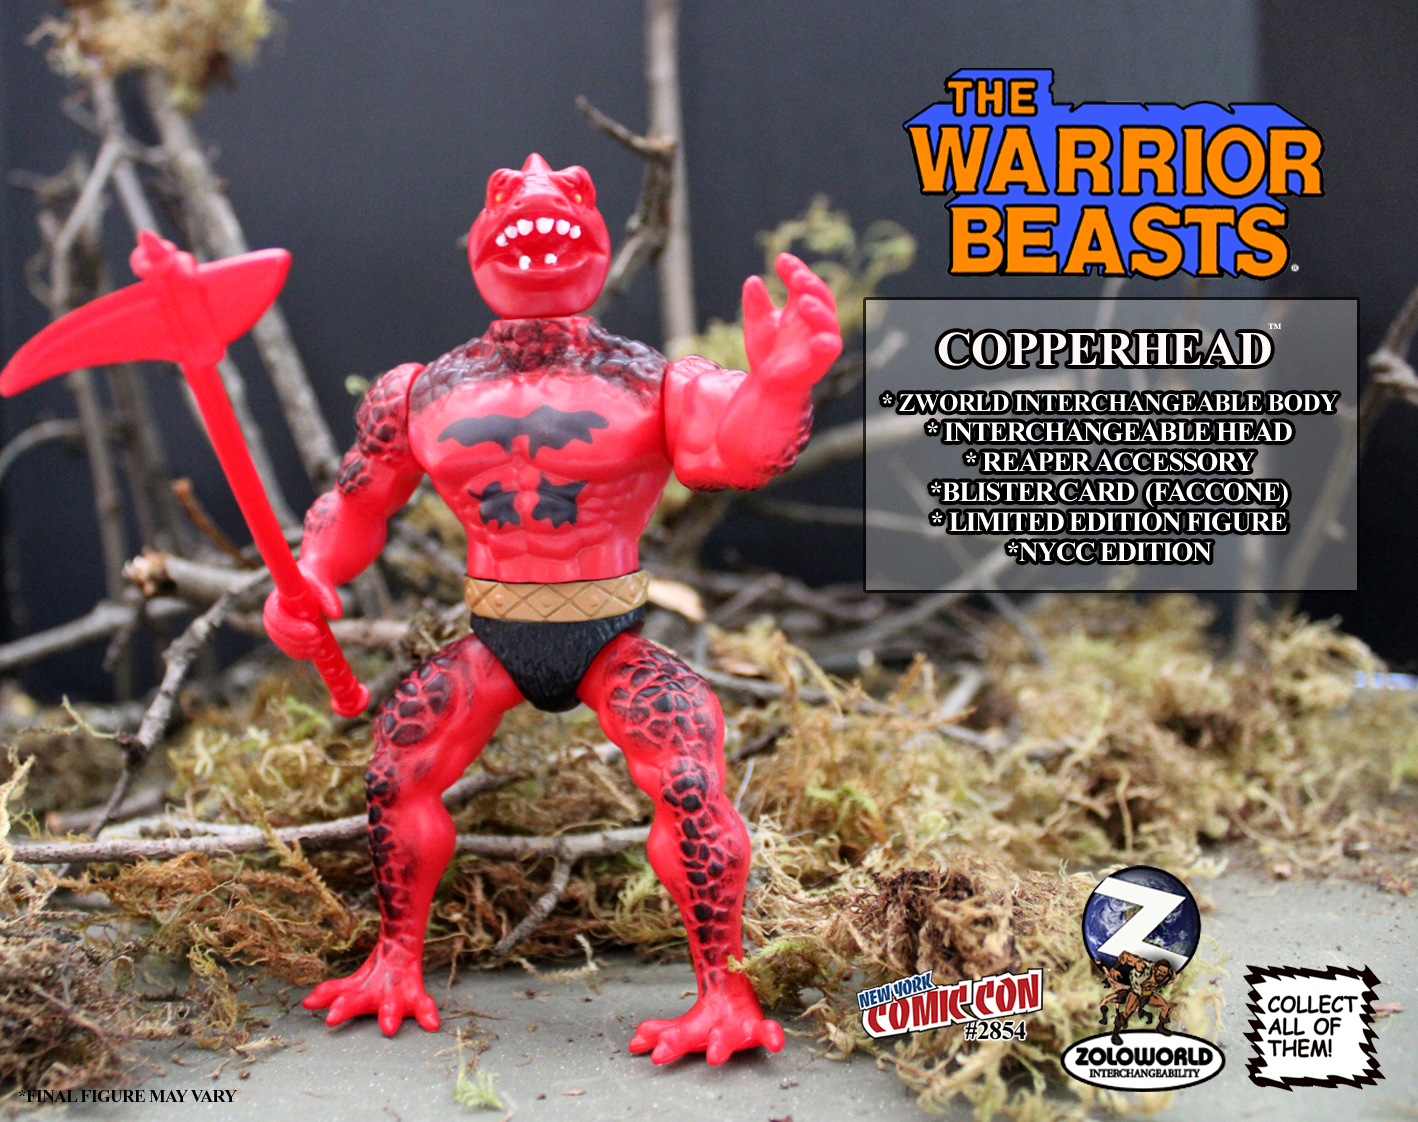 The Warrior Beasts COPPERHEAD MOC Action Figure NYCC ED